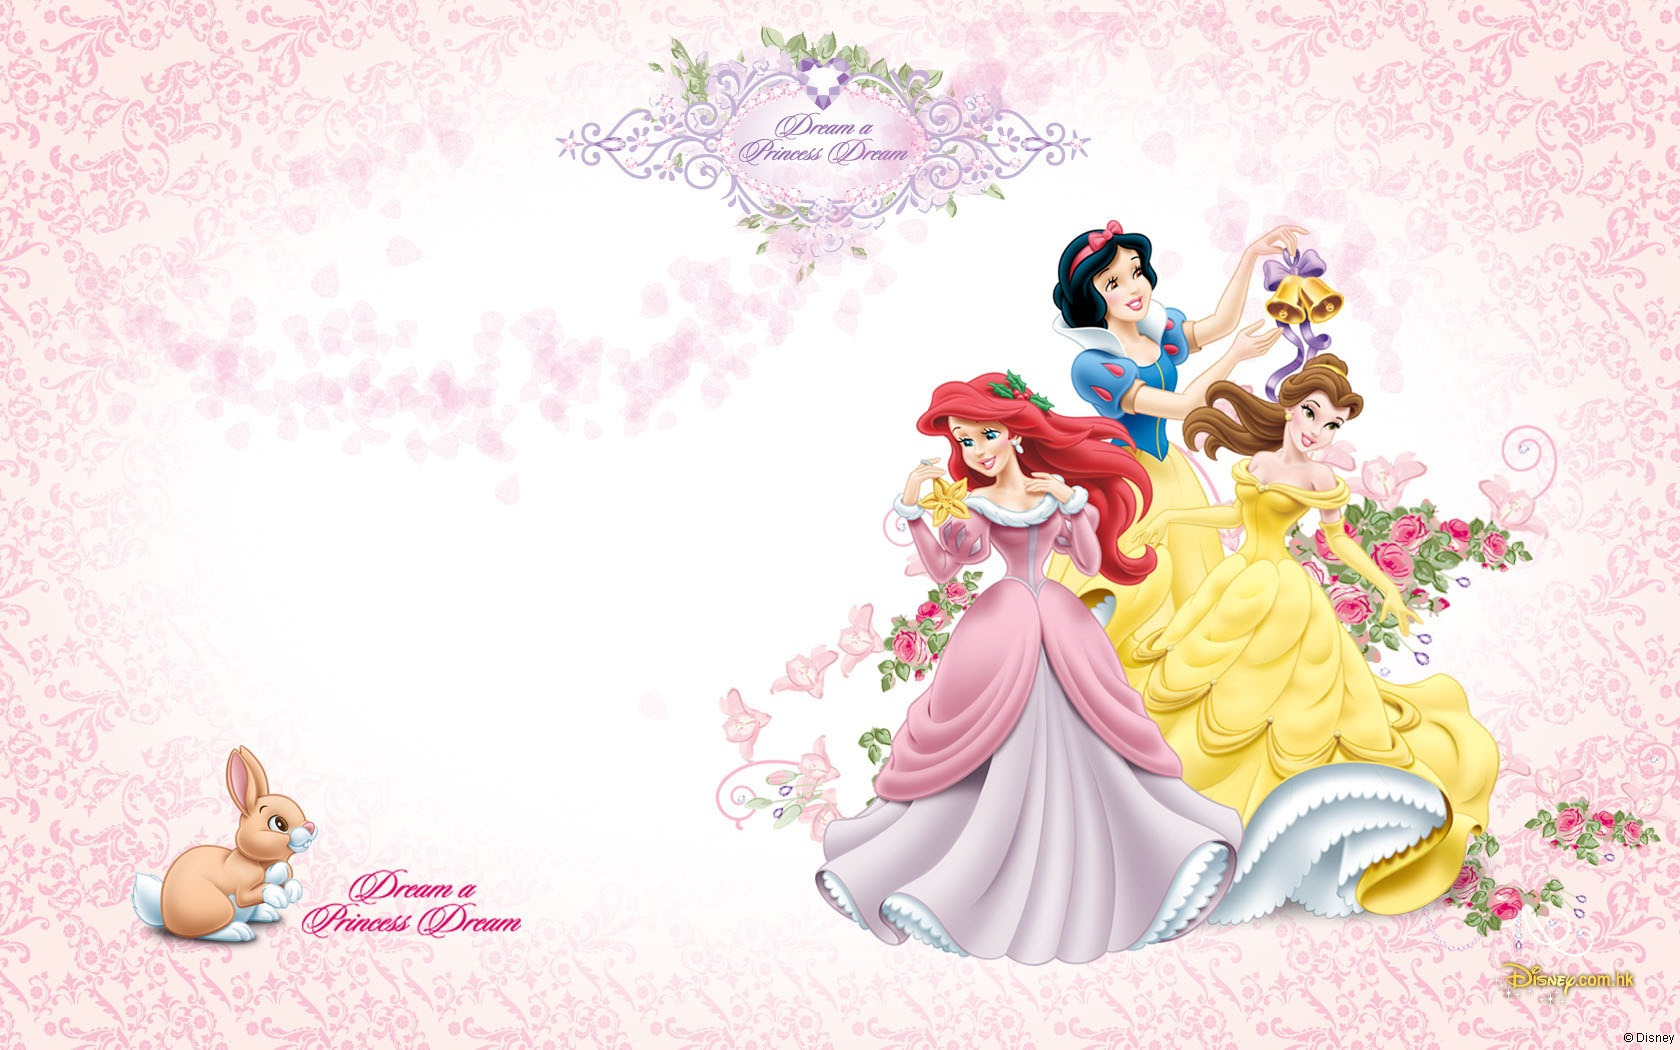 Disney Princess images Disney Princess wallpaper photos 1680x1050